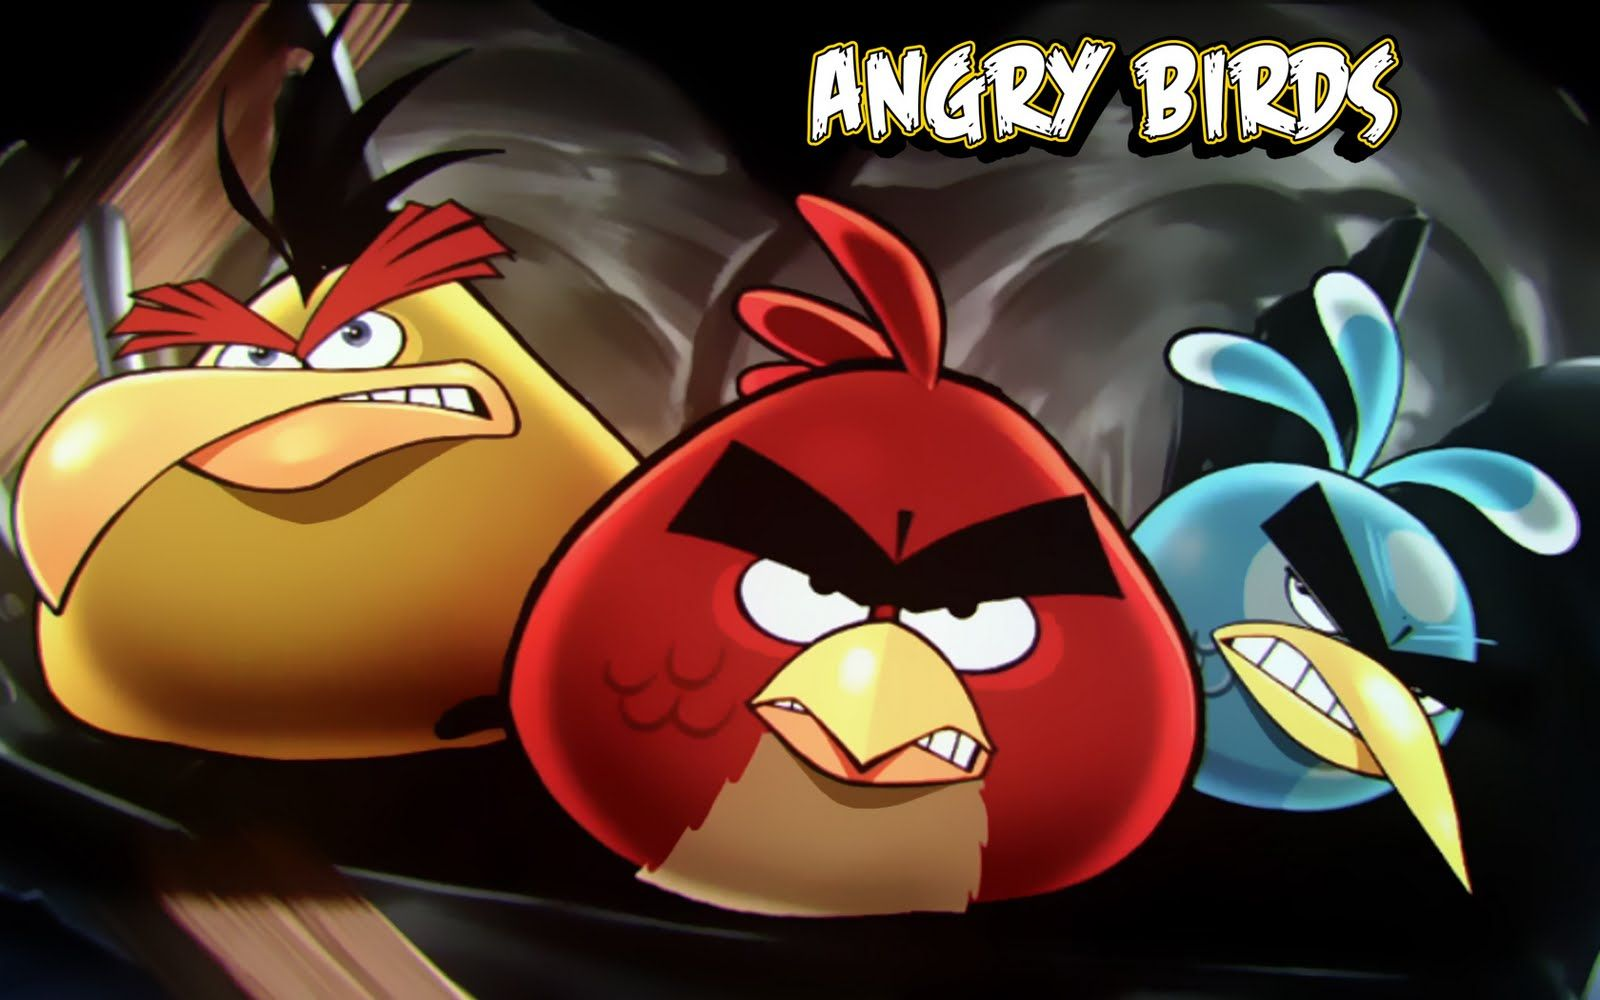 Angry Birds Games Wallpaper Hd  Facebook Cover HD Wallpapers